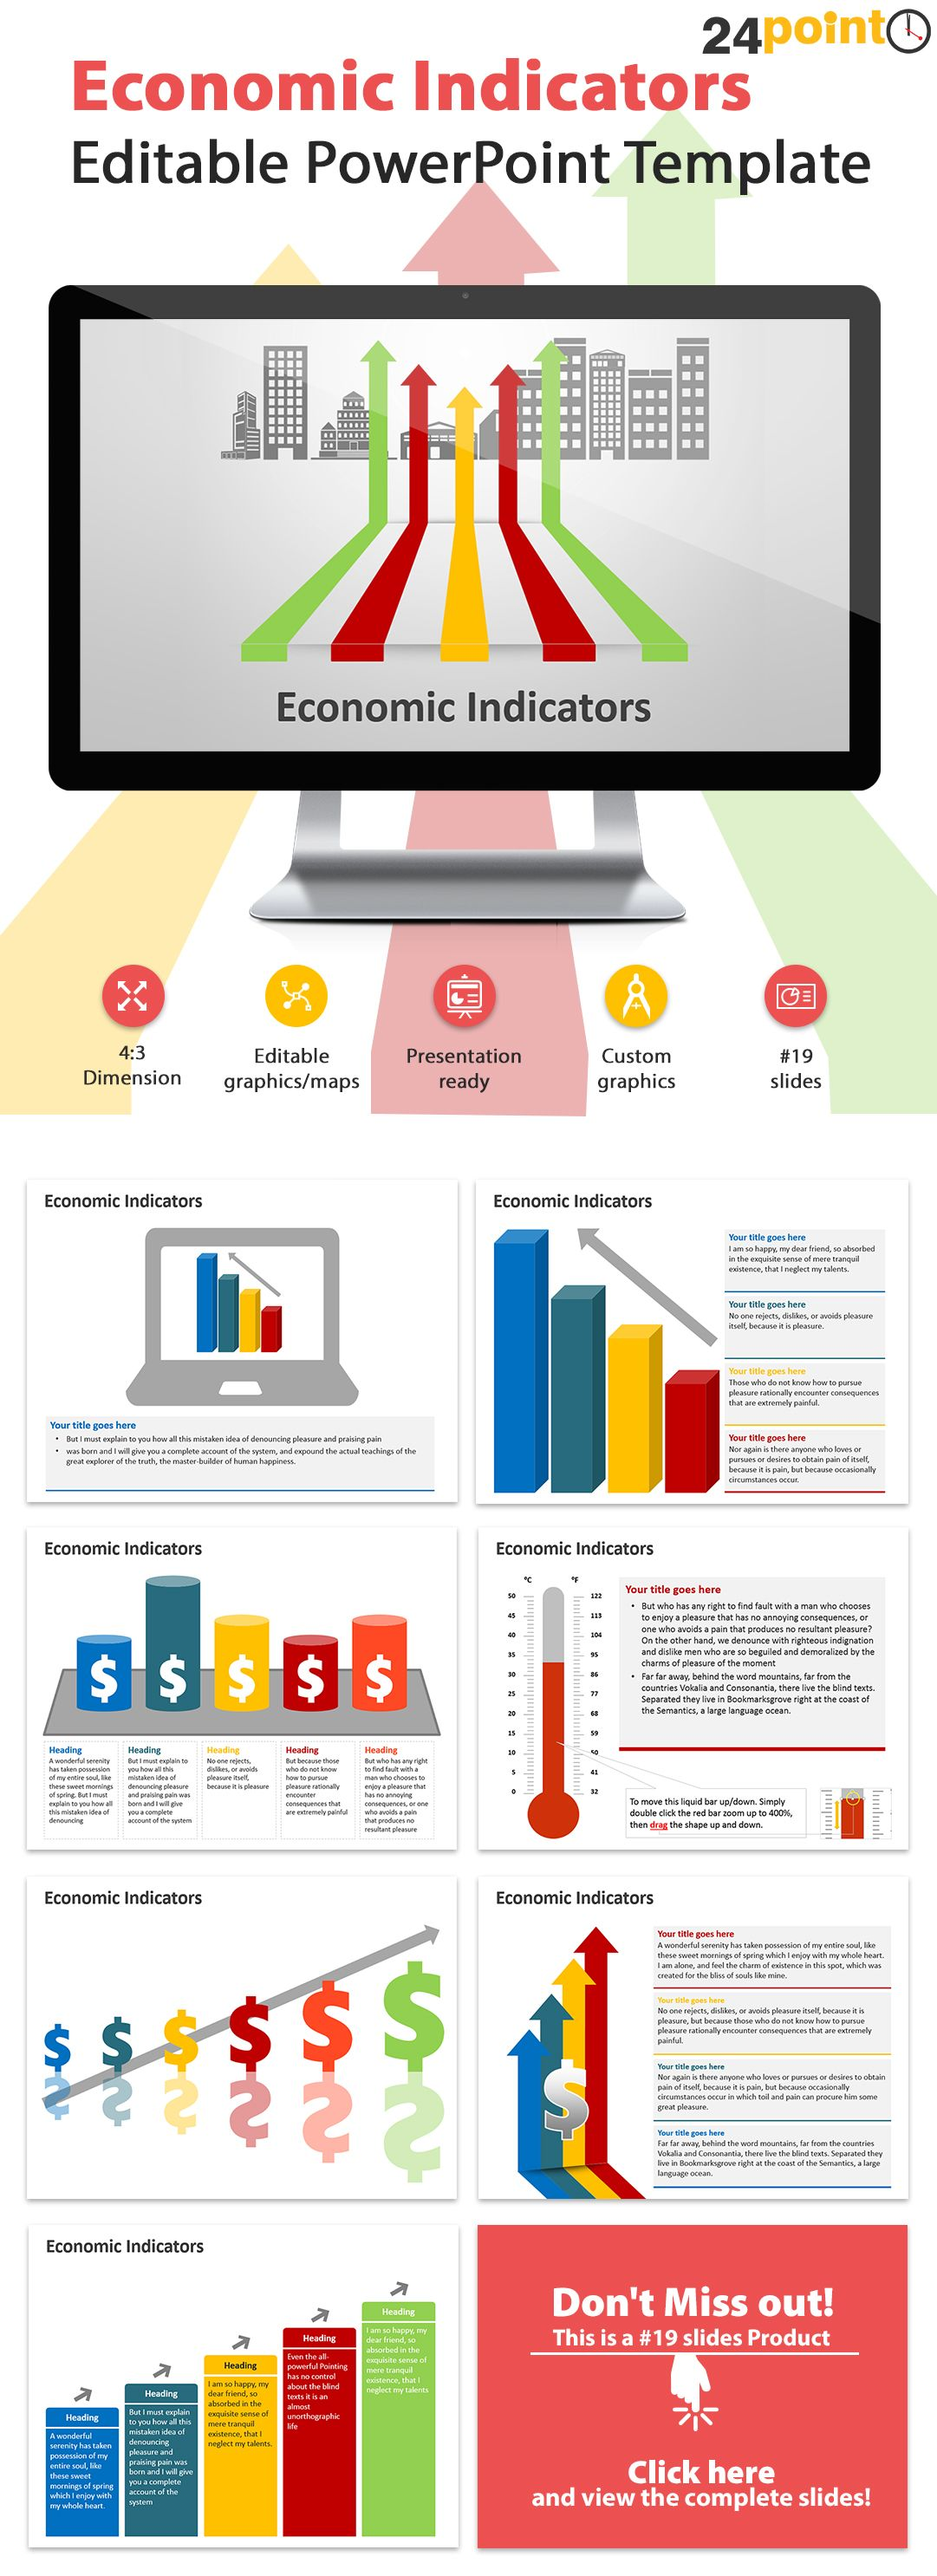 Economic indicators powerpoint template use the economic economic indicators powerpoint template use the economic indicators presentation graphics for powerpoint to create toneelgroepblik Gallery